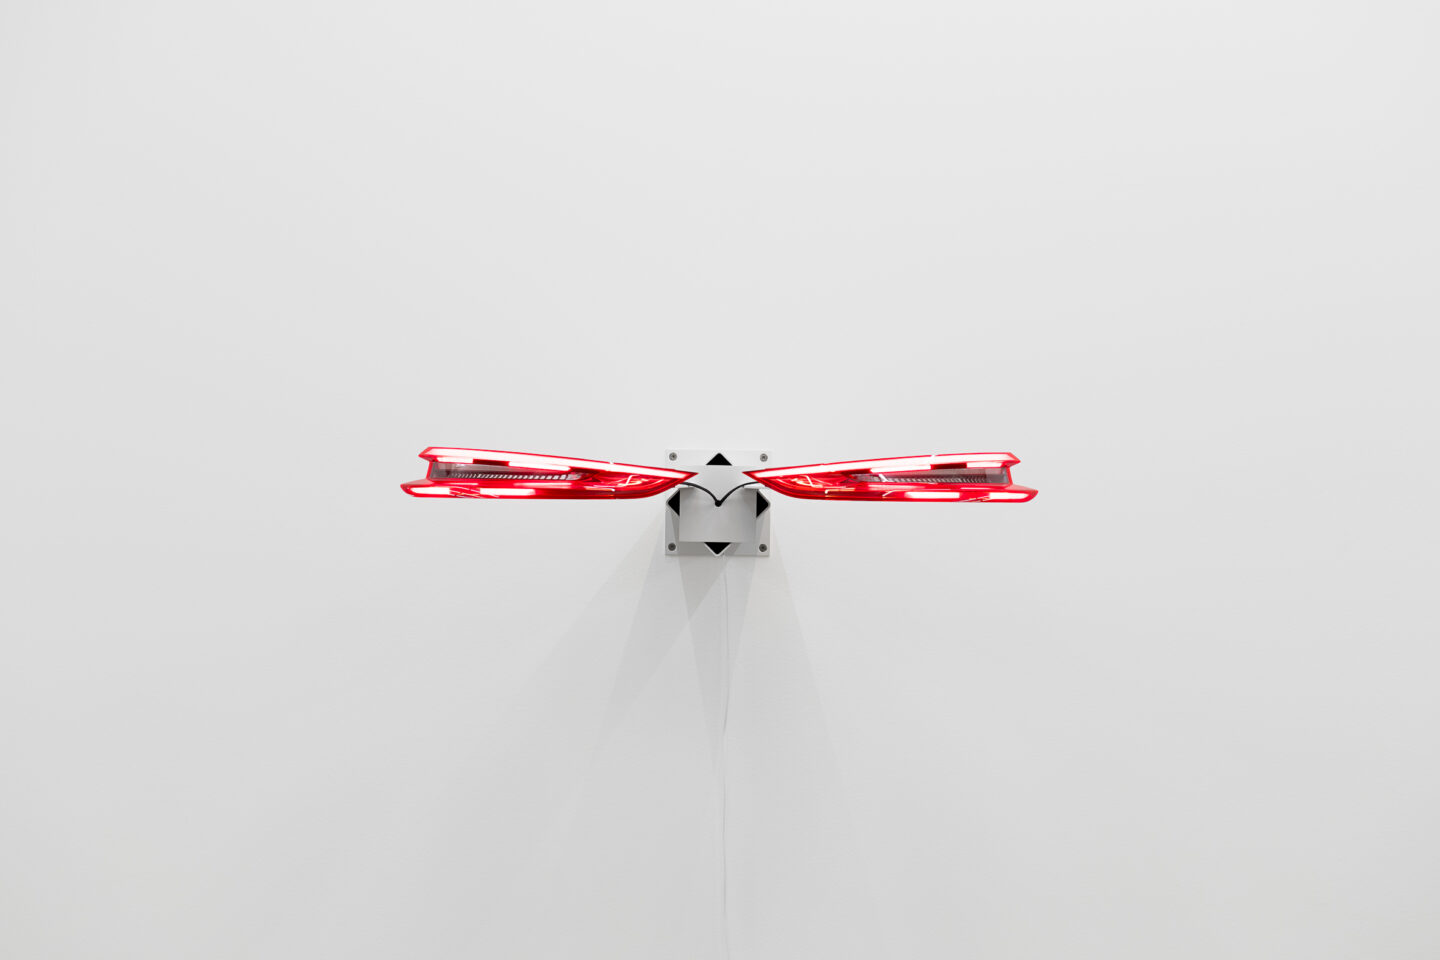 Exhibition View Groupshow «Metamorphosis Overdrive; view on Yngve Holen, Hater Taillight, 2016» at Kunstmuseum St. Gallen, St. Gallen, 2020 / Photo: Sebastian Stadler / Courtesy: the artist and Kunstmuseum St. Gallen